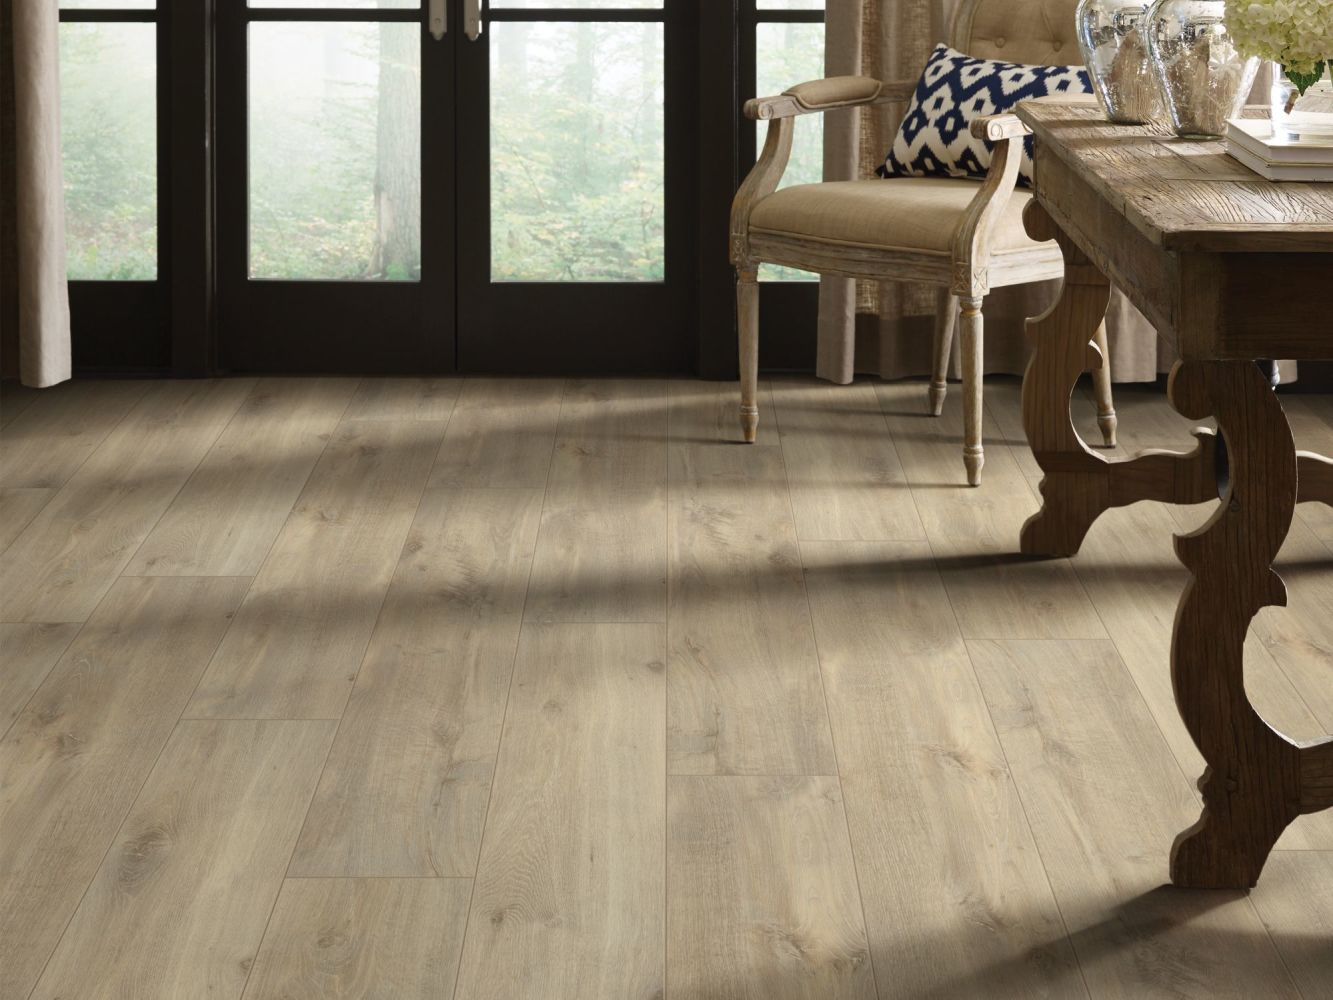 Shaw Floors Resilient Property Solutions Patriot+ Accent Riverside Oak 01031_VE380